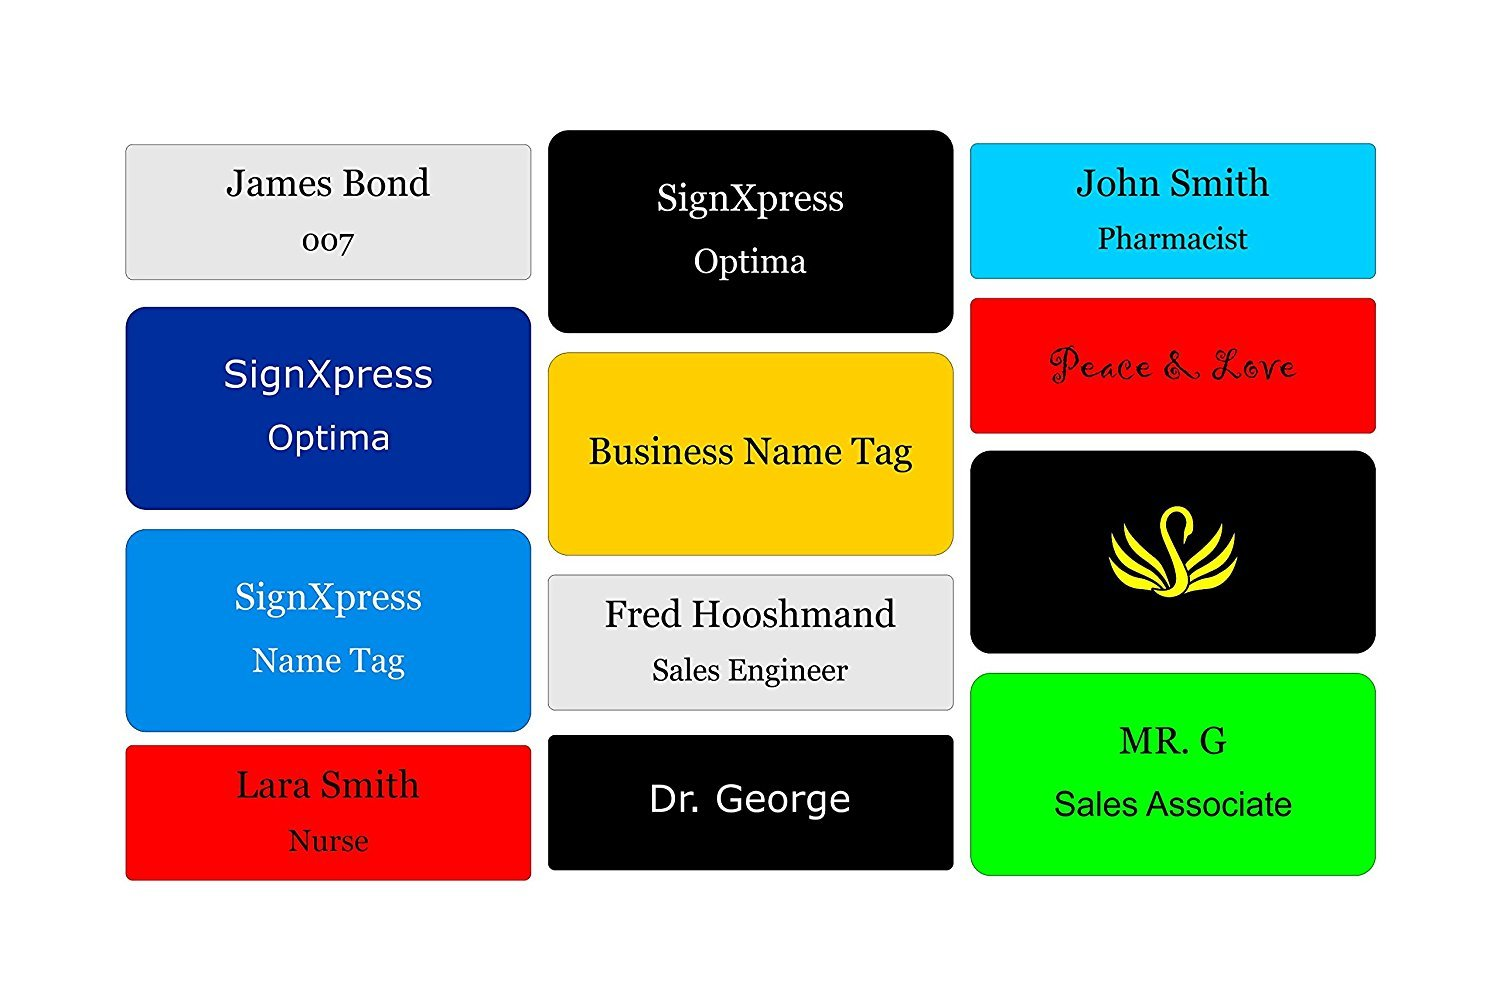 Business Name Tag / ID Badge Personalized with Magnet- Customized Laser Engraved 3 x 1.5 SignXpress Sign Express Eng_2x3